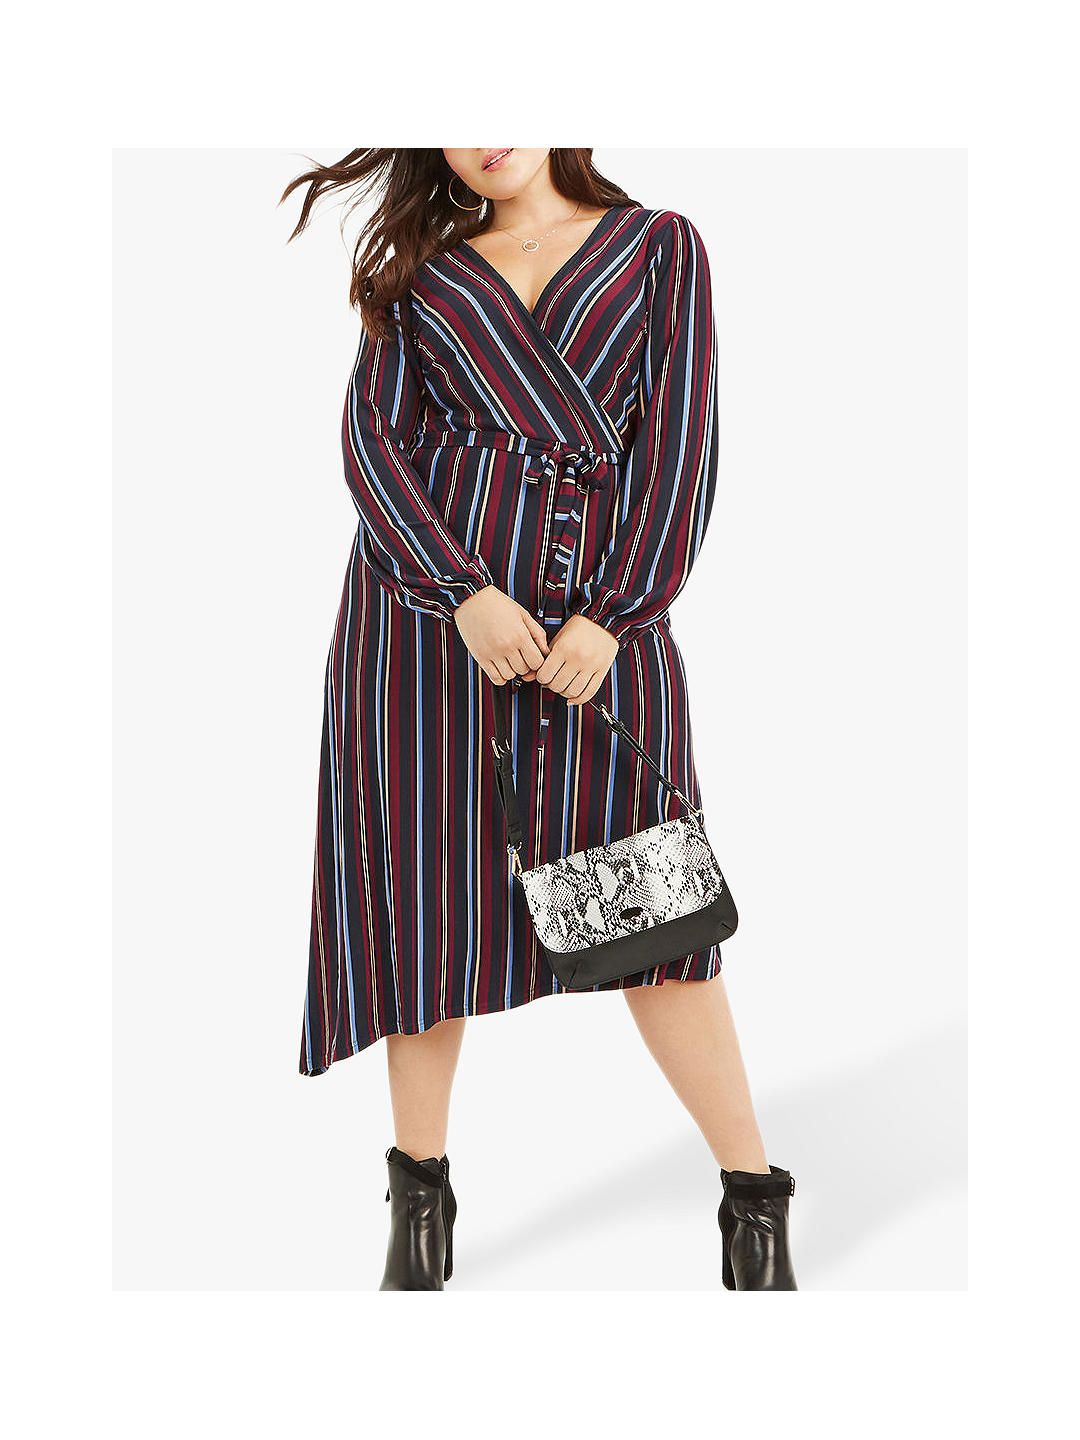 e9a7ca3a9b75 BuyOasis Curve Collegate Stripe Wrap Dress, Multi, XL Online at  johnlewis.com